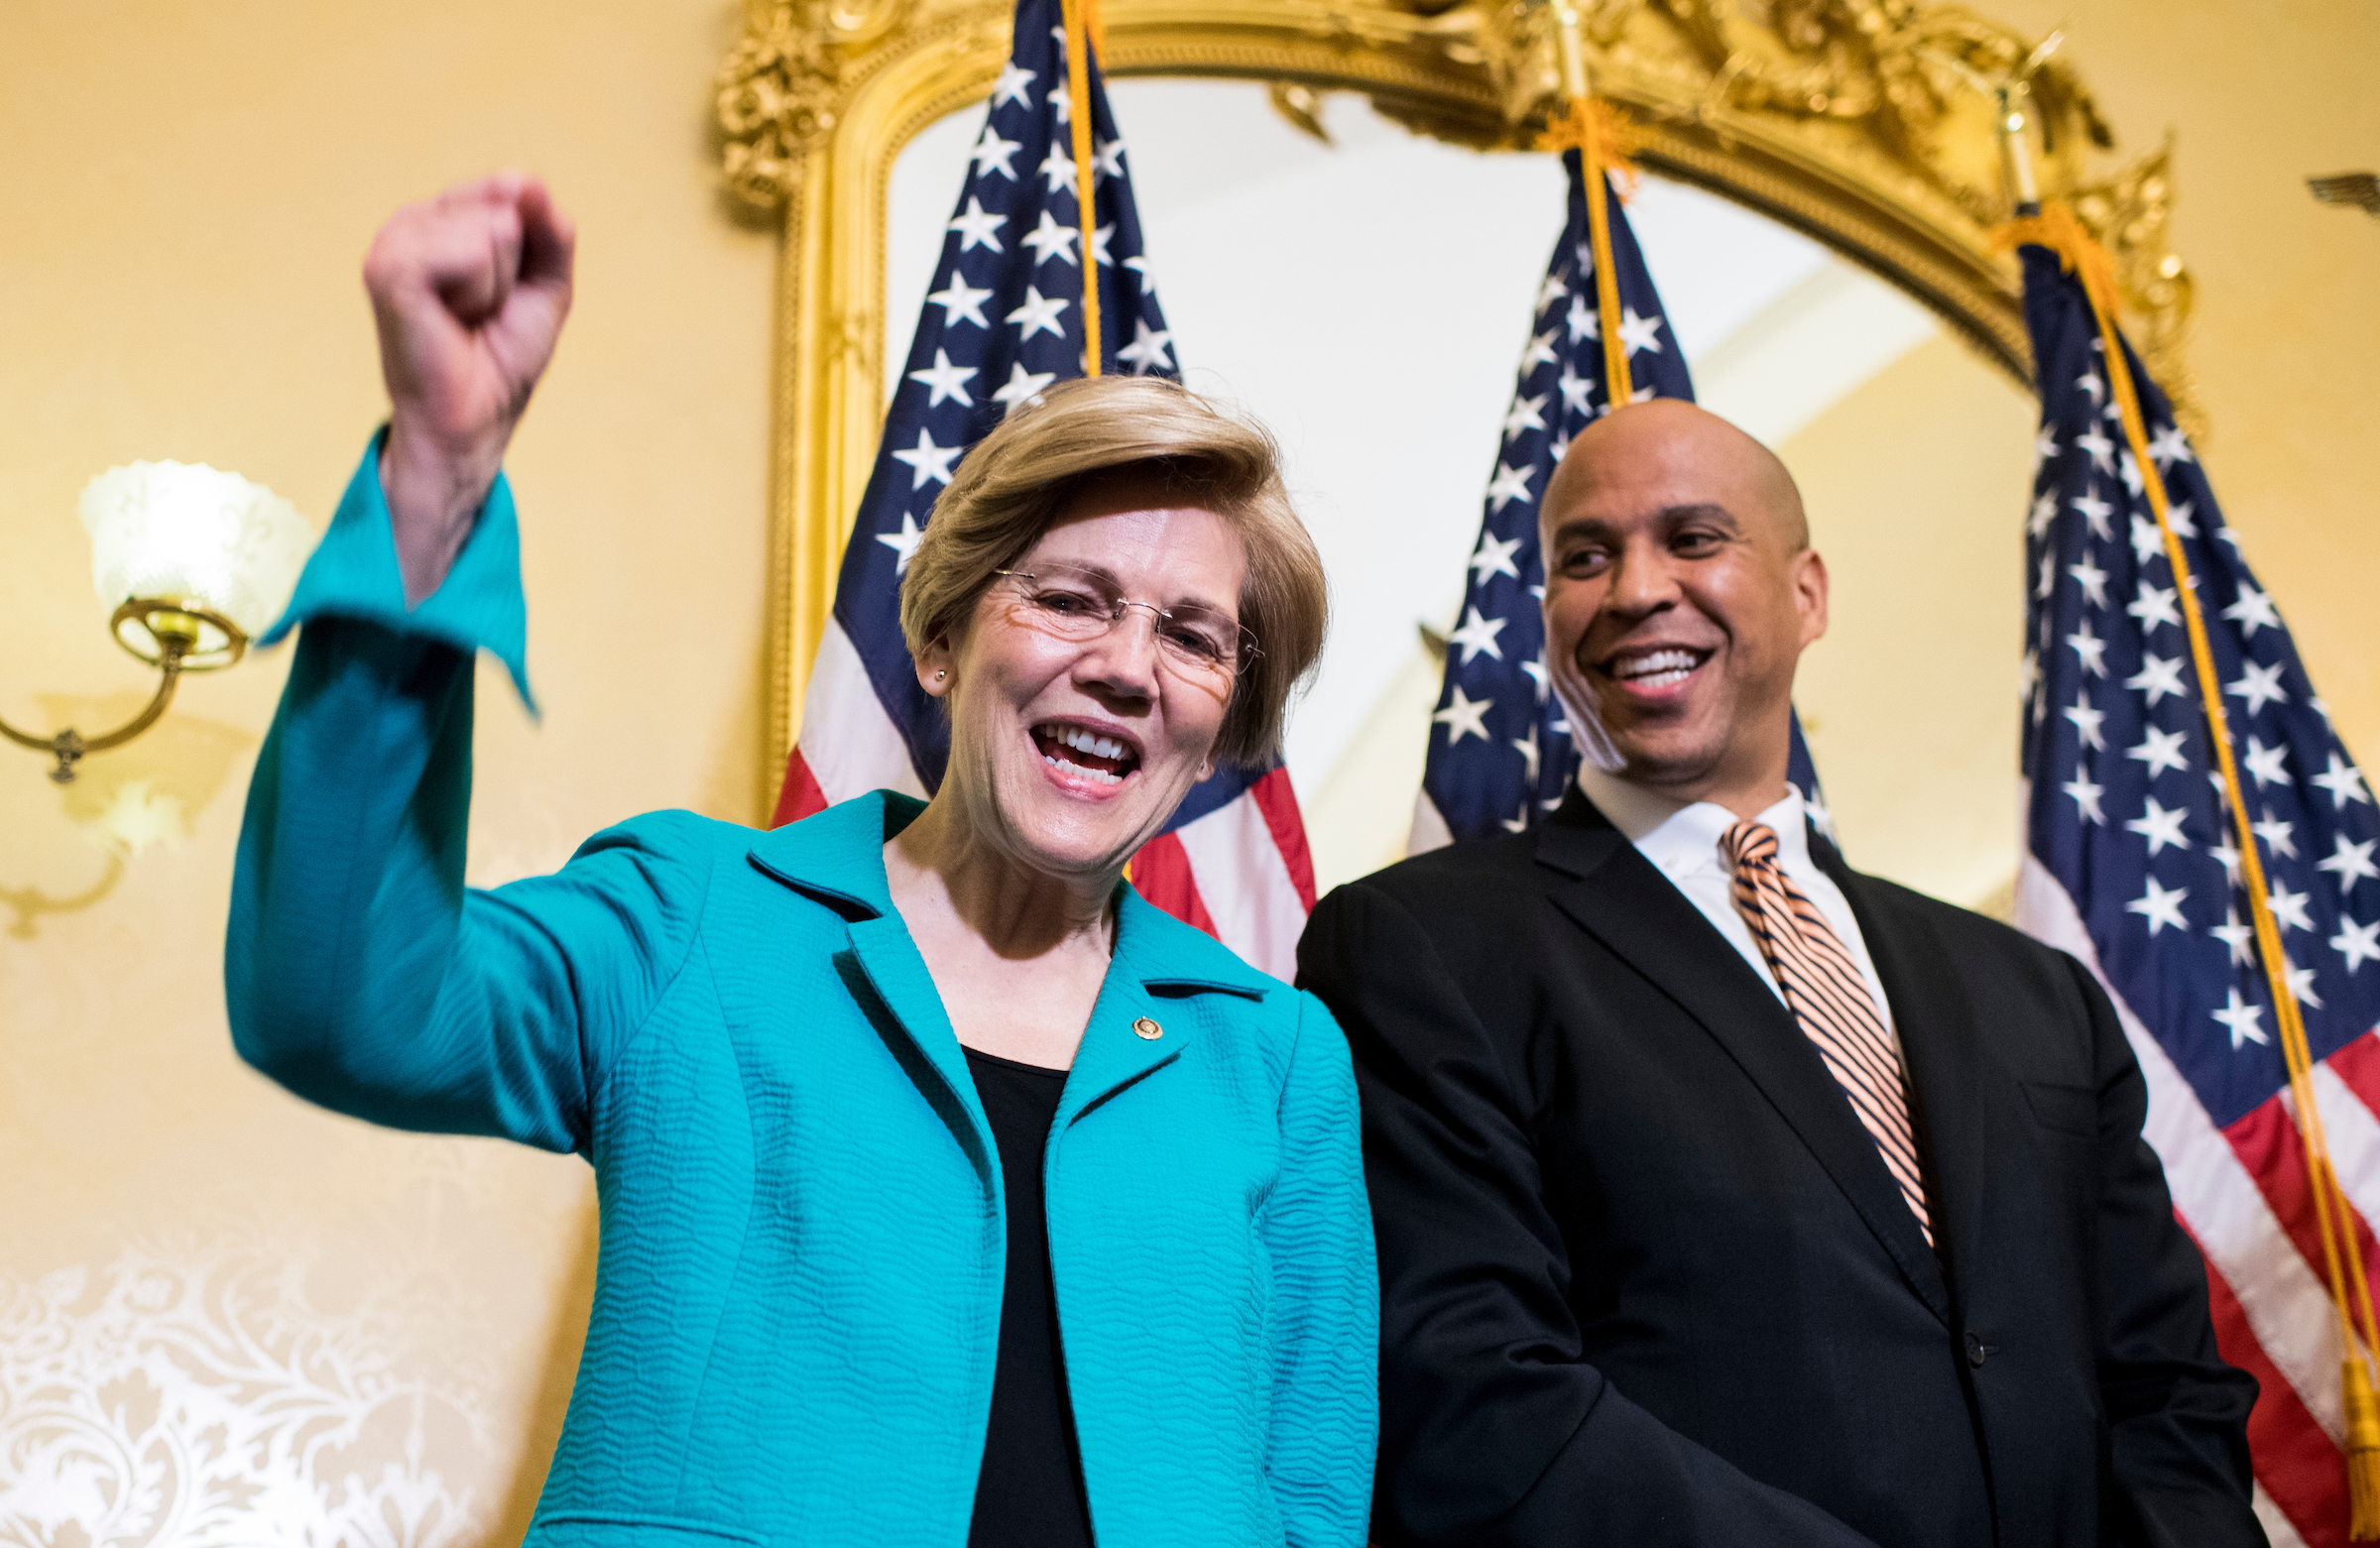 Elizabeth Warren and Cory Booker rake in seven figures from their writing. (Bill Clark/CQ Roll Call)